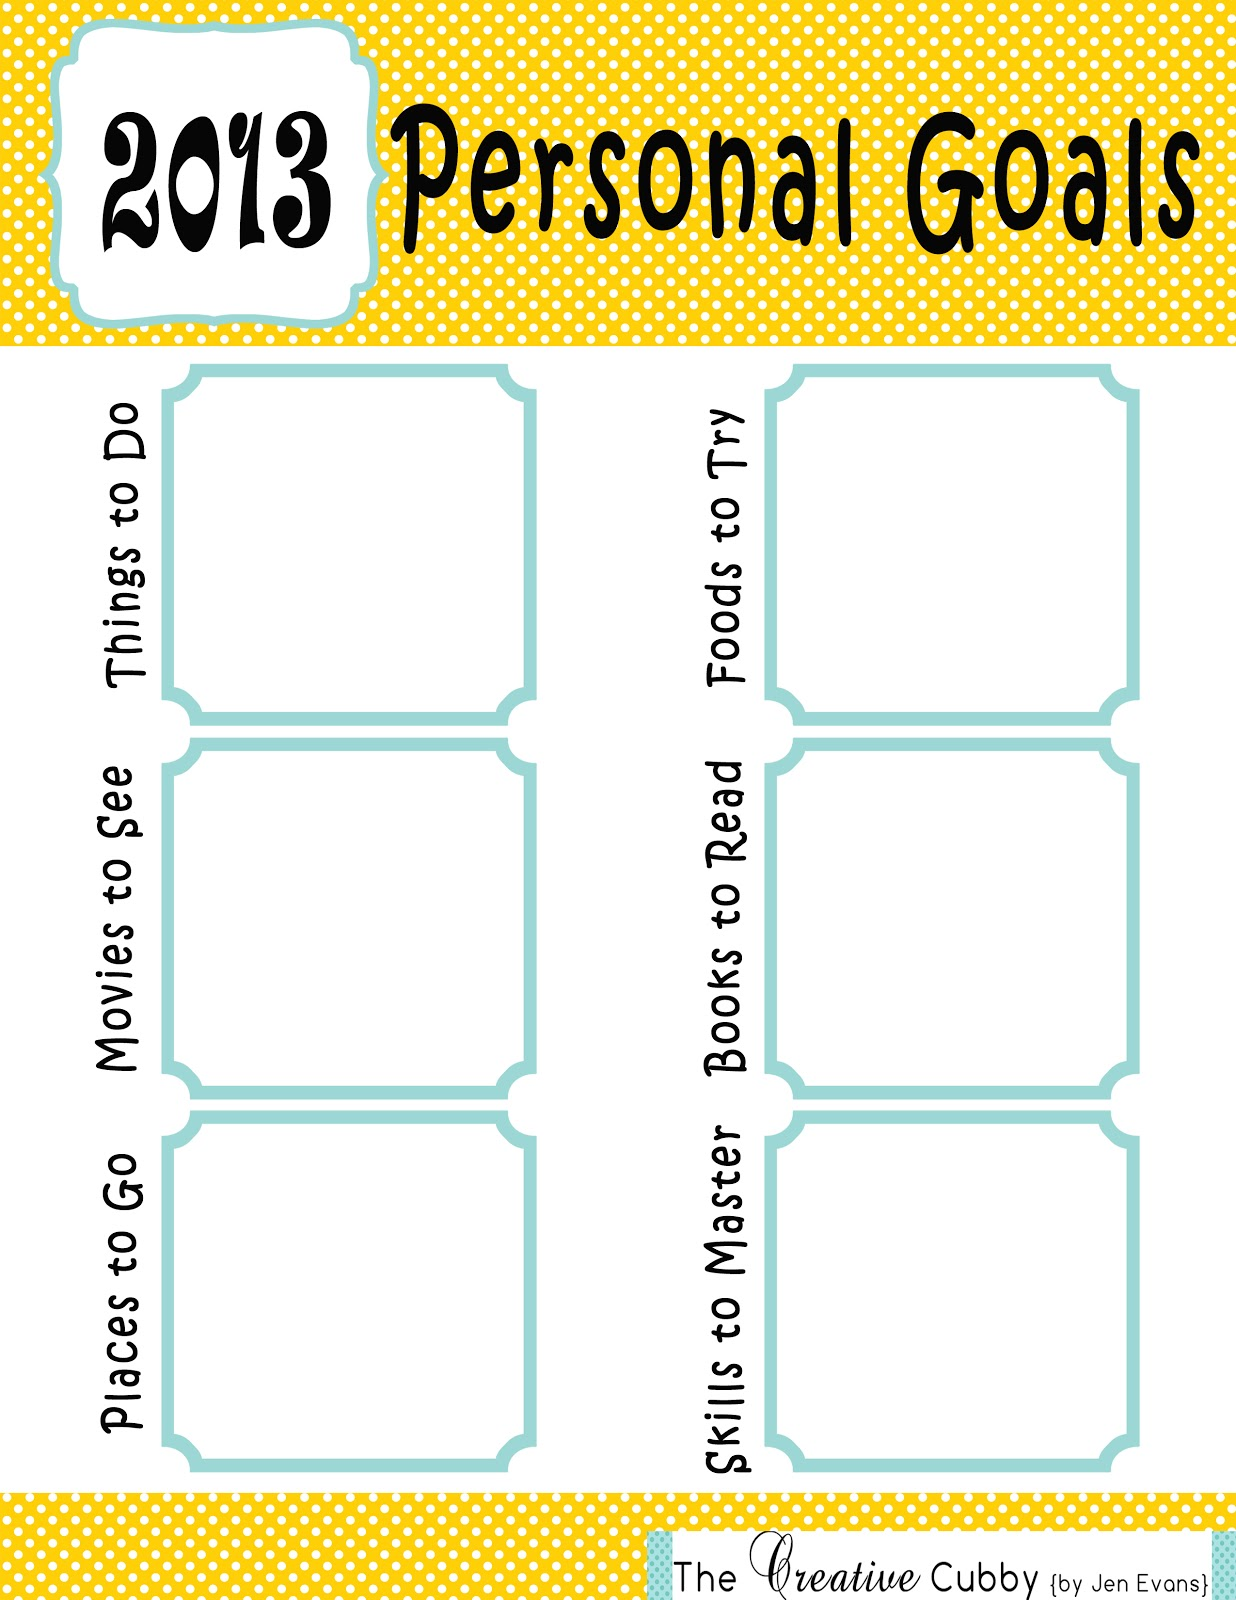 goals personal sheet creative years cubby source visit past activity